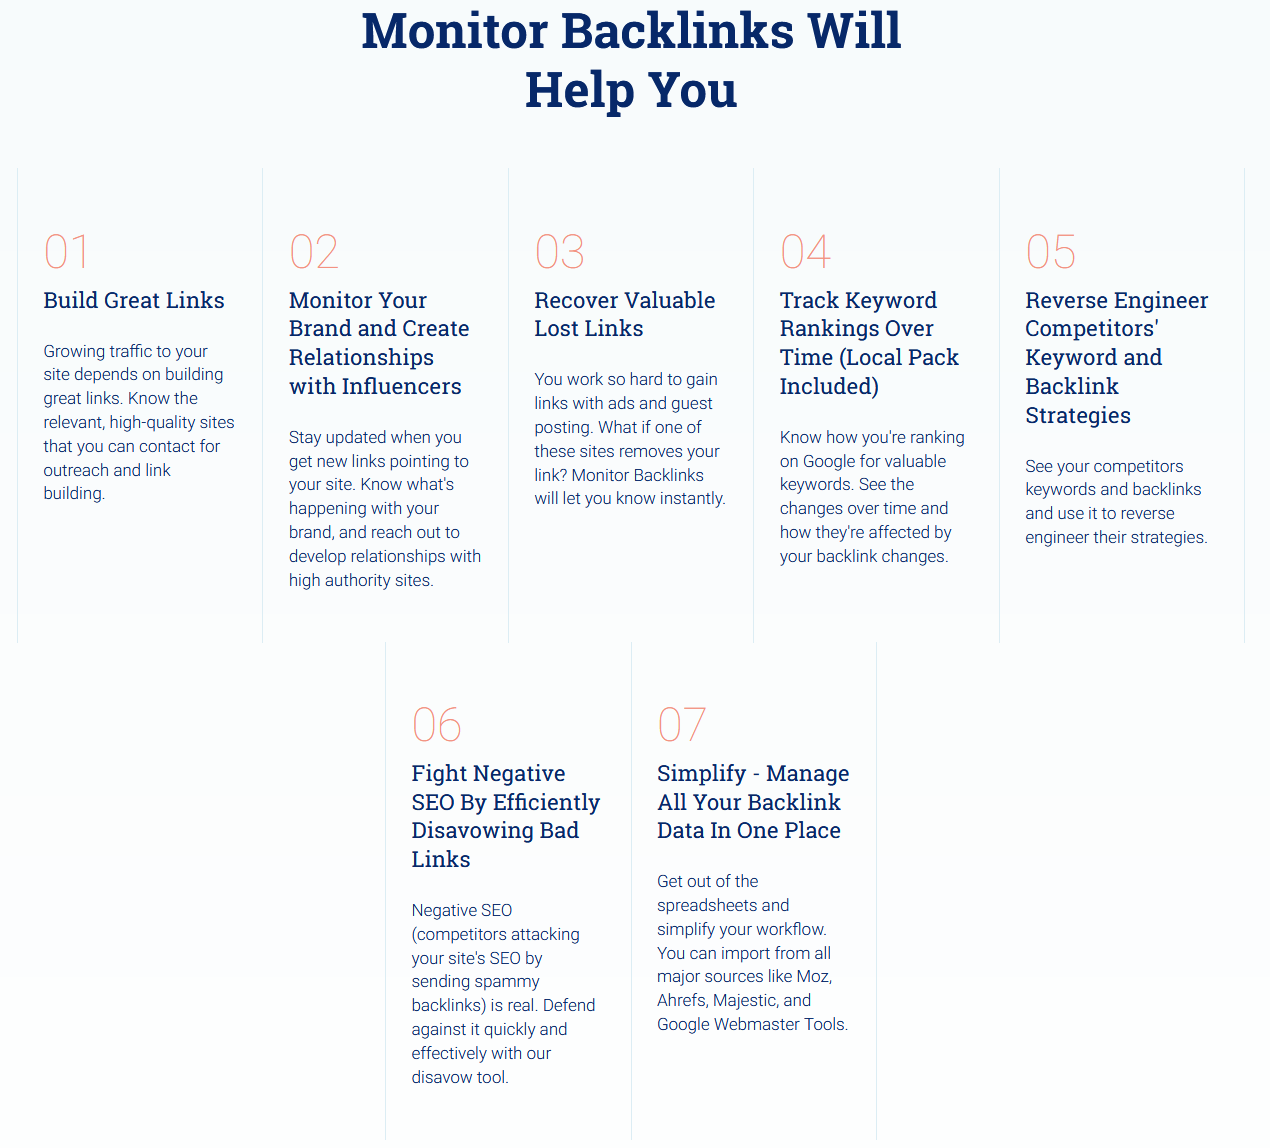 Monitor Backlinks Features